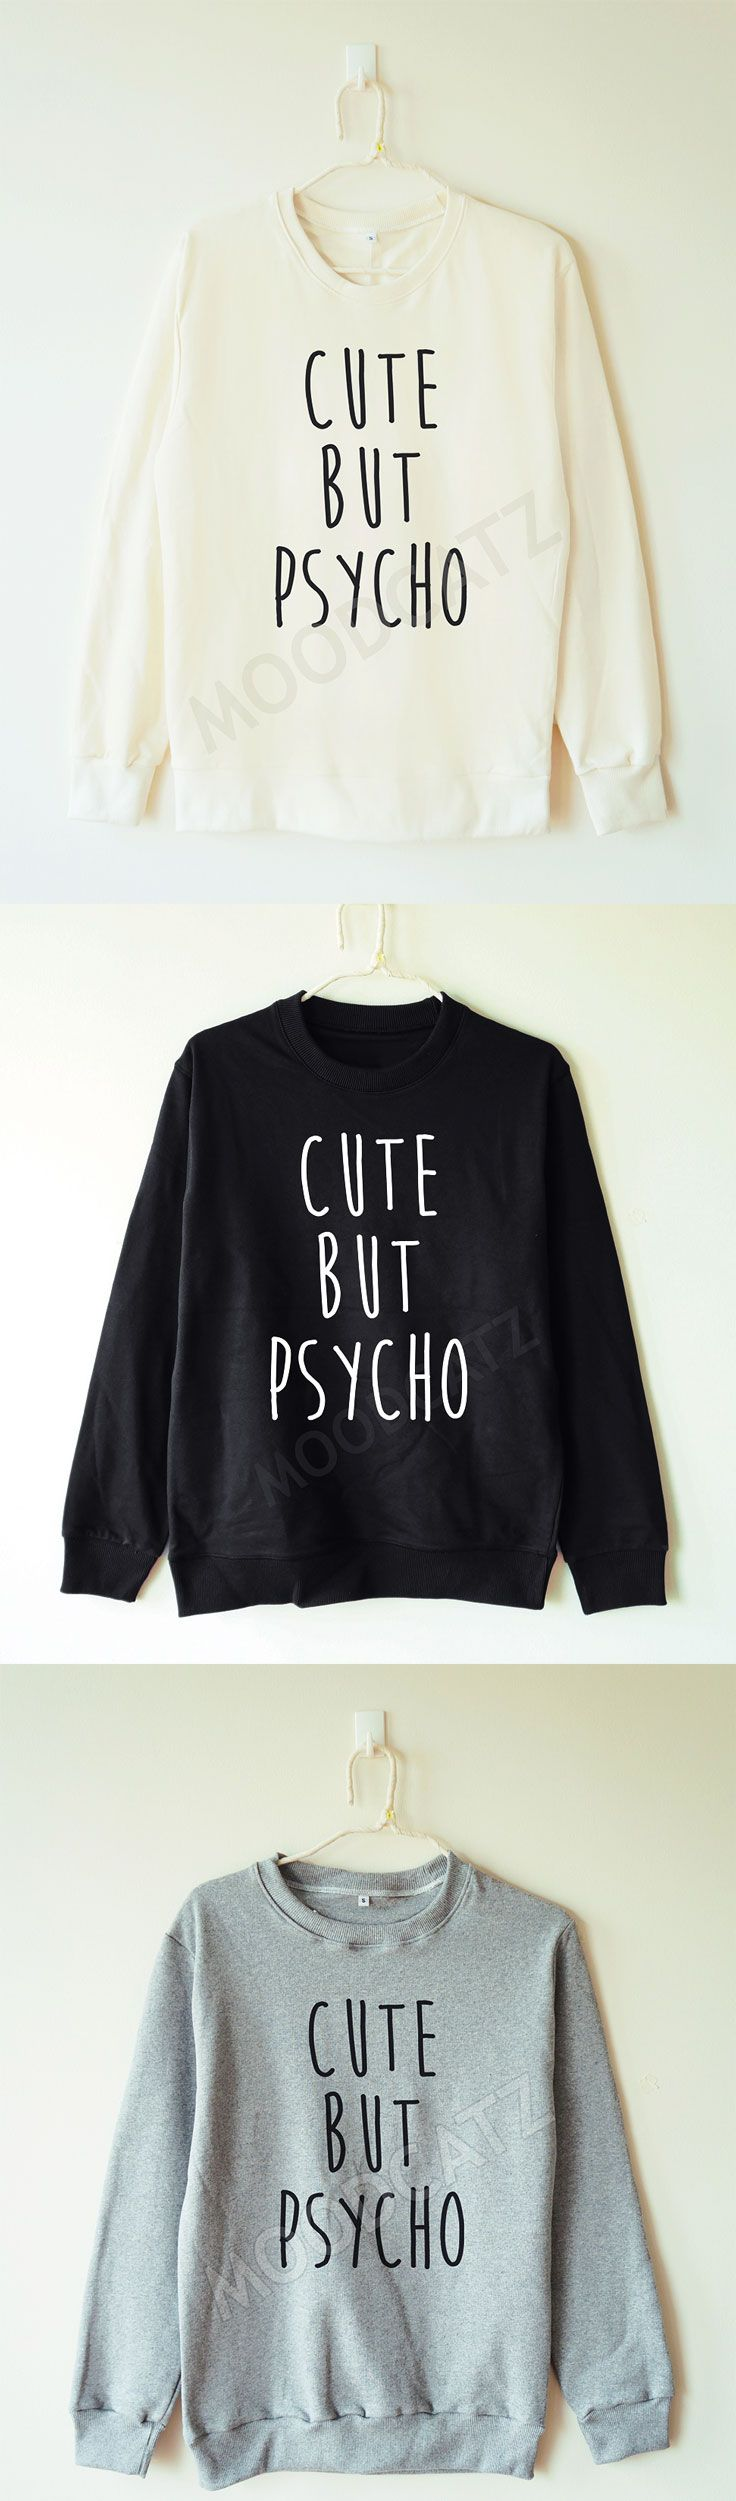 Cute But Psycho, Graphic Sweatshirt, Pastel Goth, Modern Grunge, NuGoth Fashion, Goth Girl Style